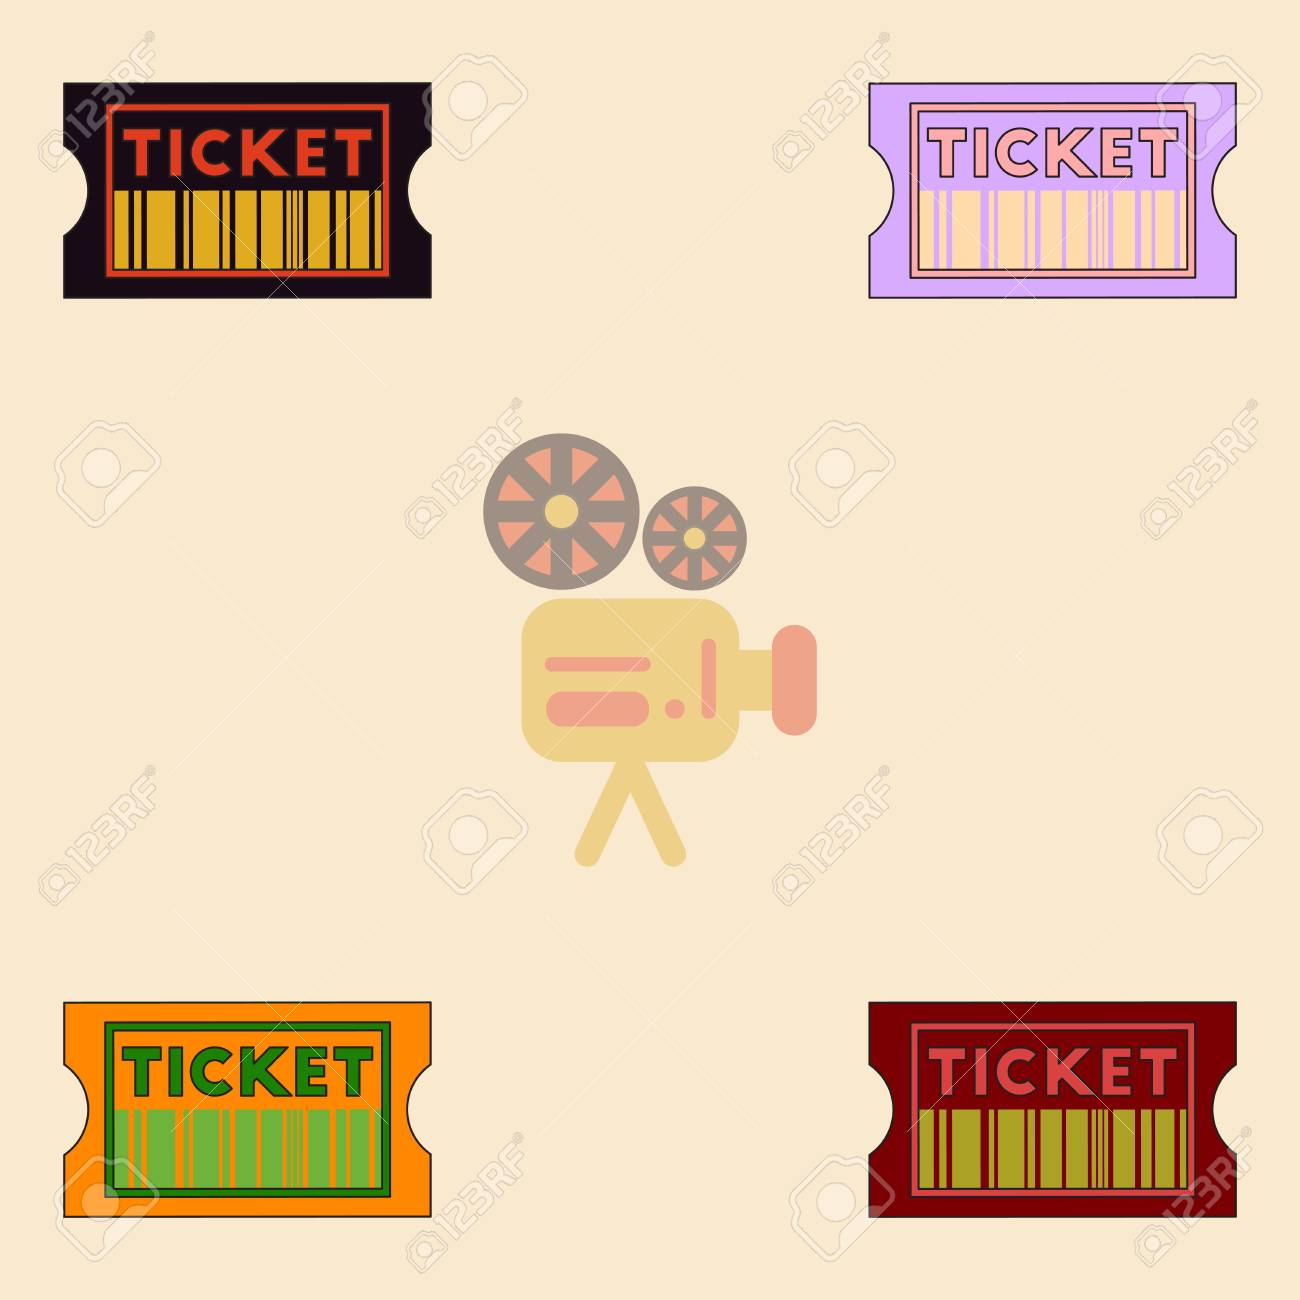 Movie Ticket Vector Illustration Collection In Flat Style Cinema With Barcode Stock